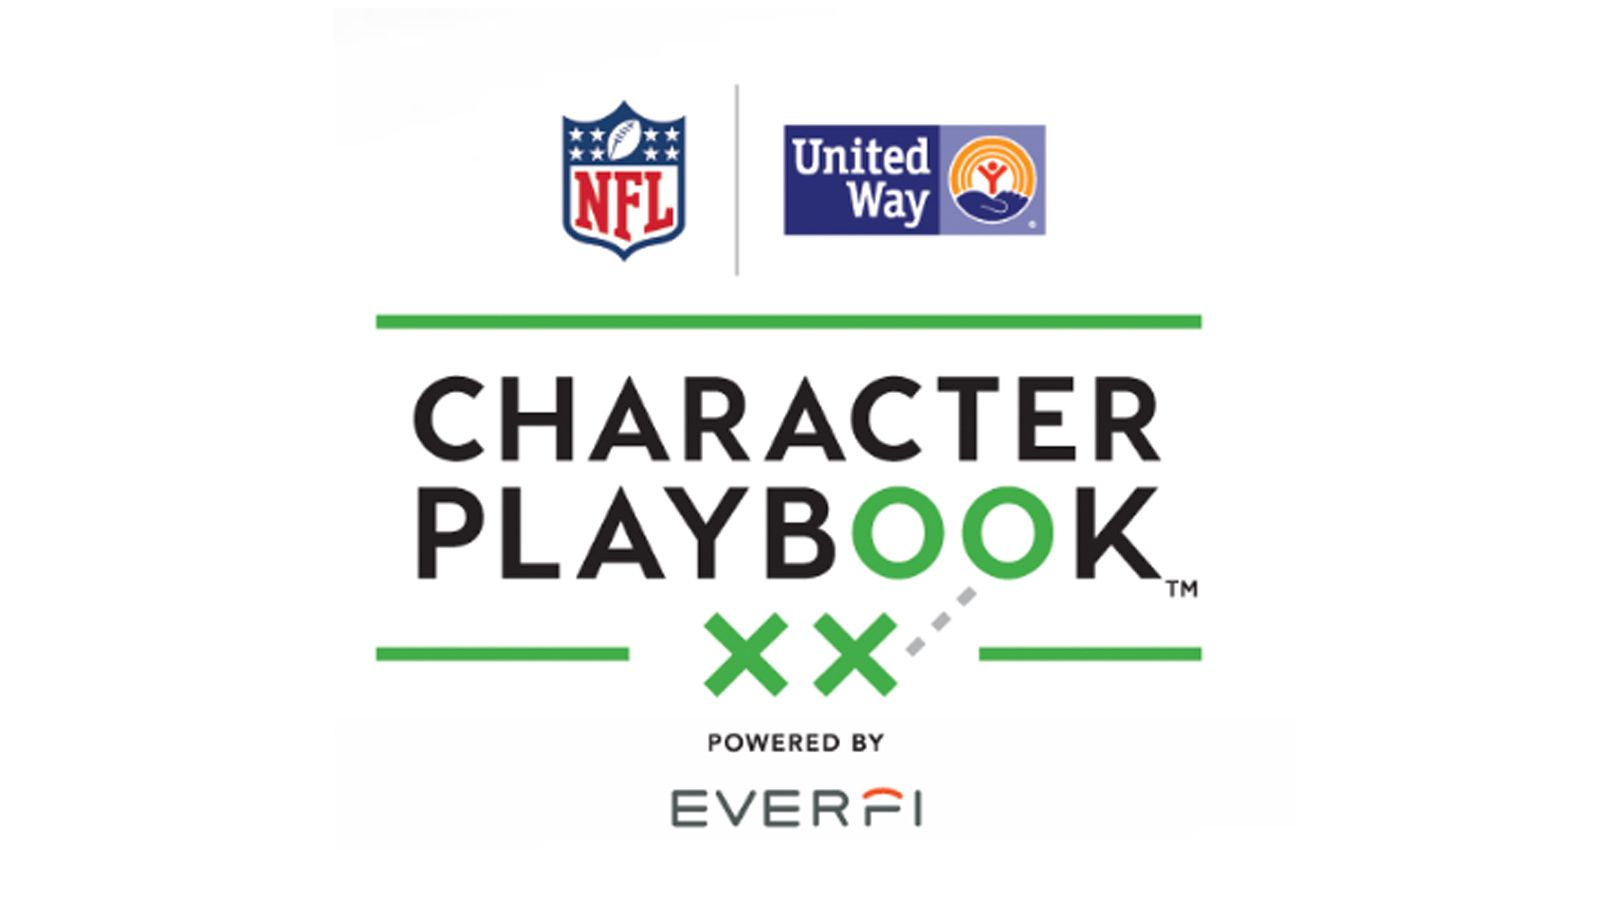 Character Playbook